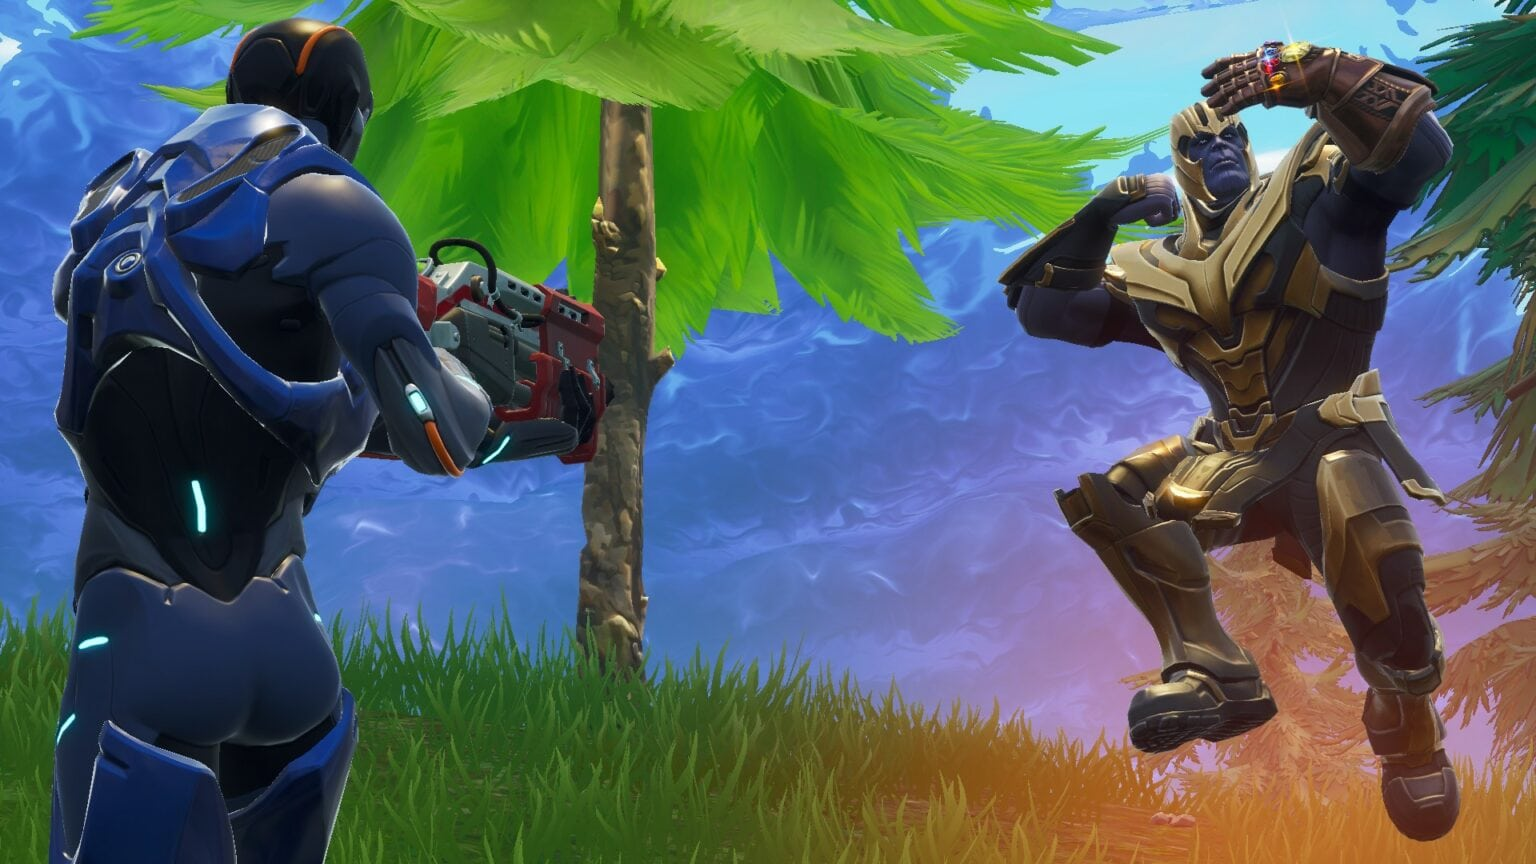 In the legal battle between Apple and Epic Games, which one is Thanos?